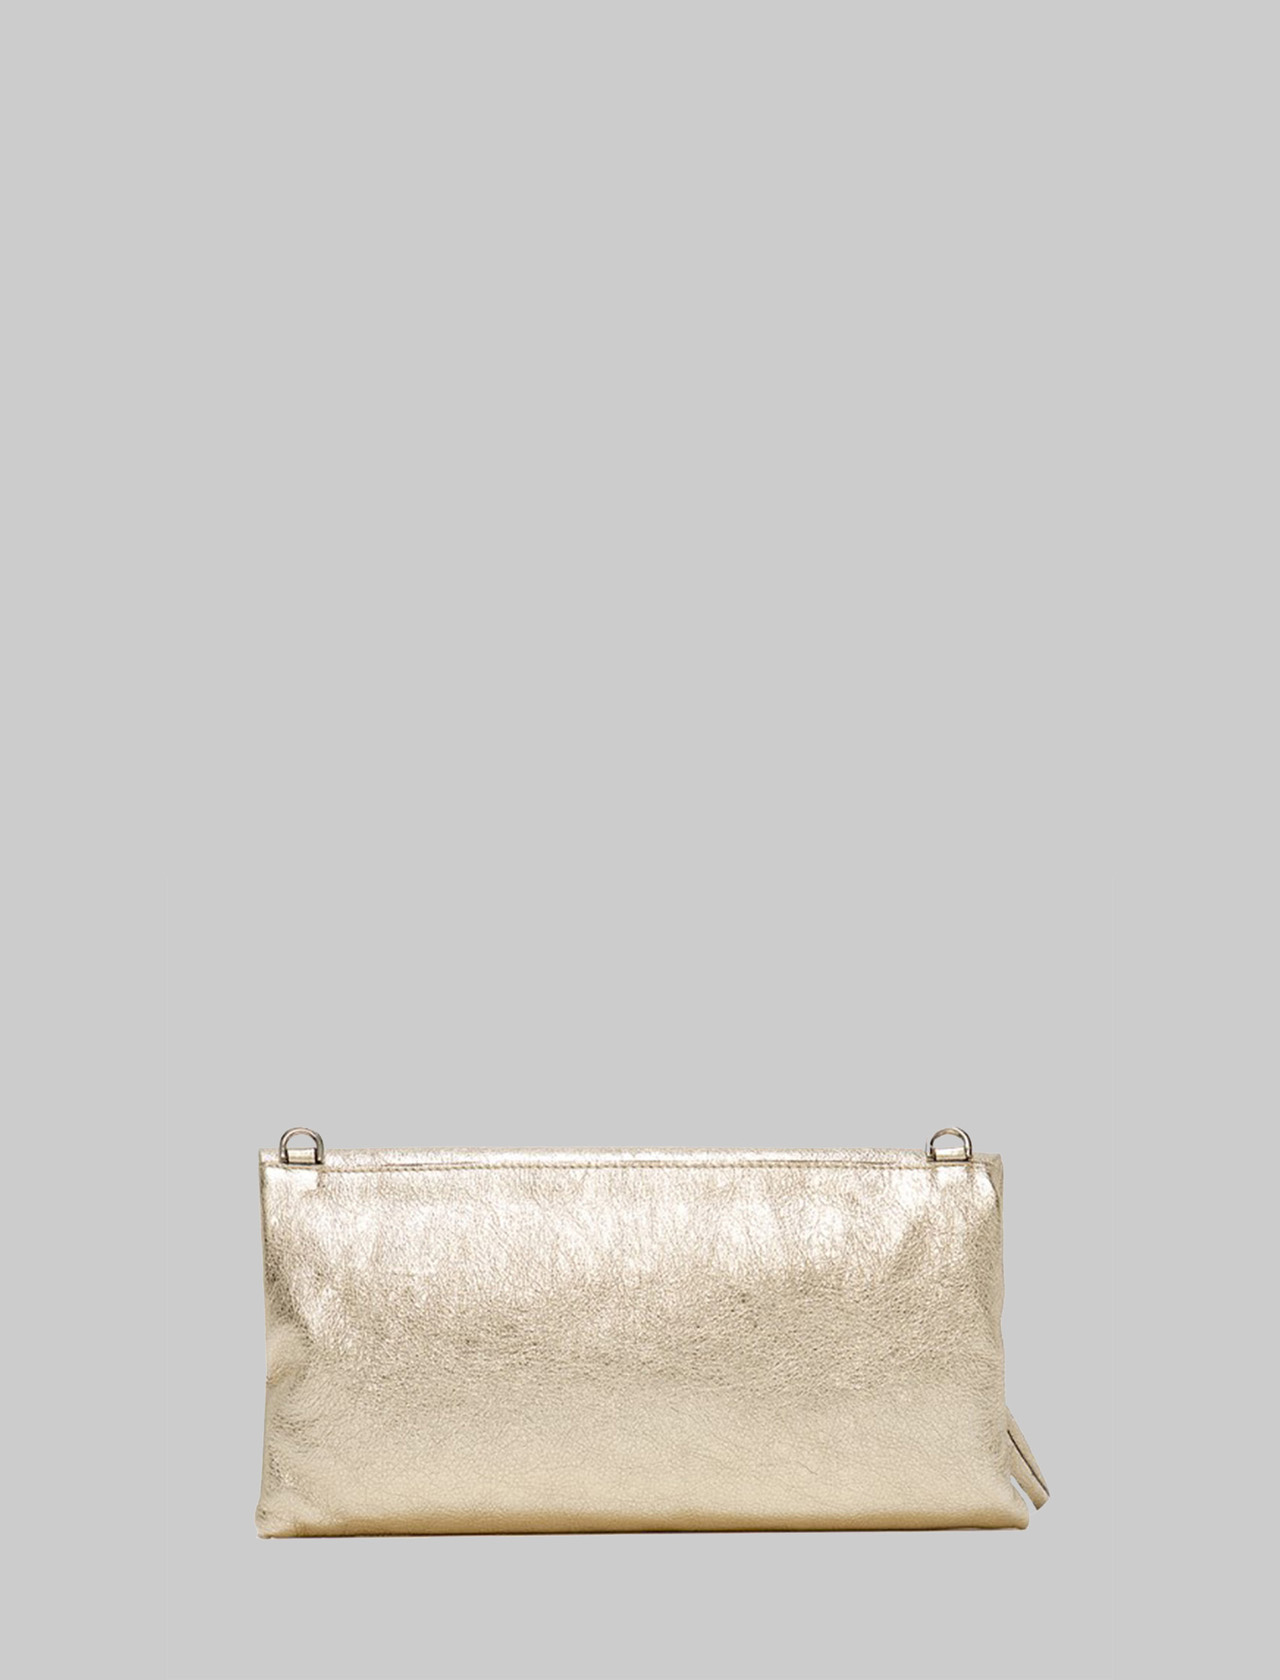 Cherry Small Woman Clutch Bag In Platinum Leather With Tone Removable Shoulder Strap Gianni Chiarini | Bags and backpacks | BS7374571